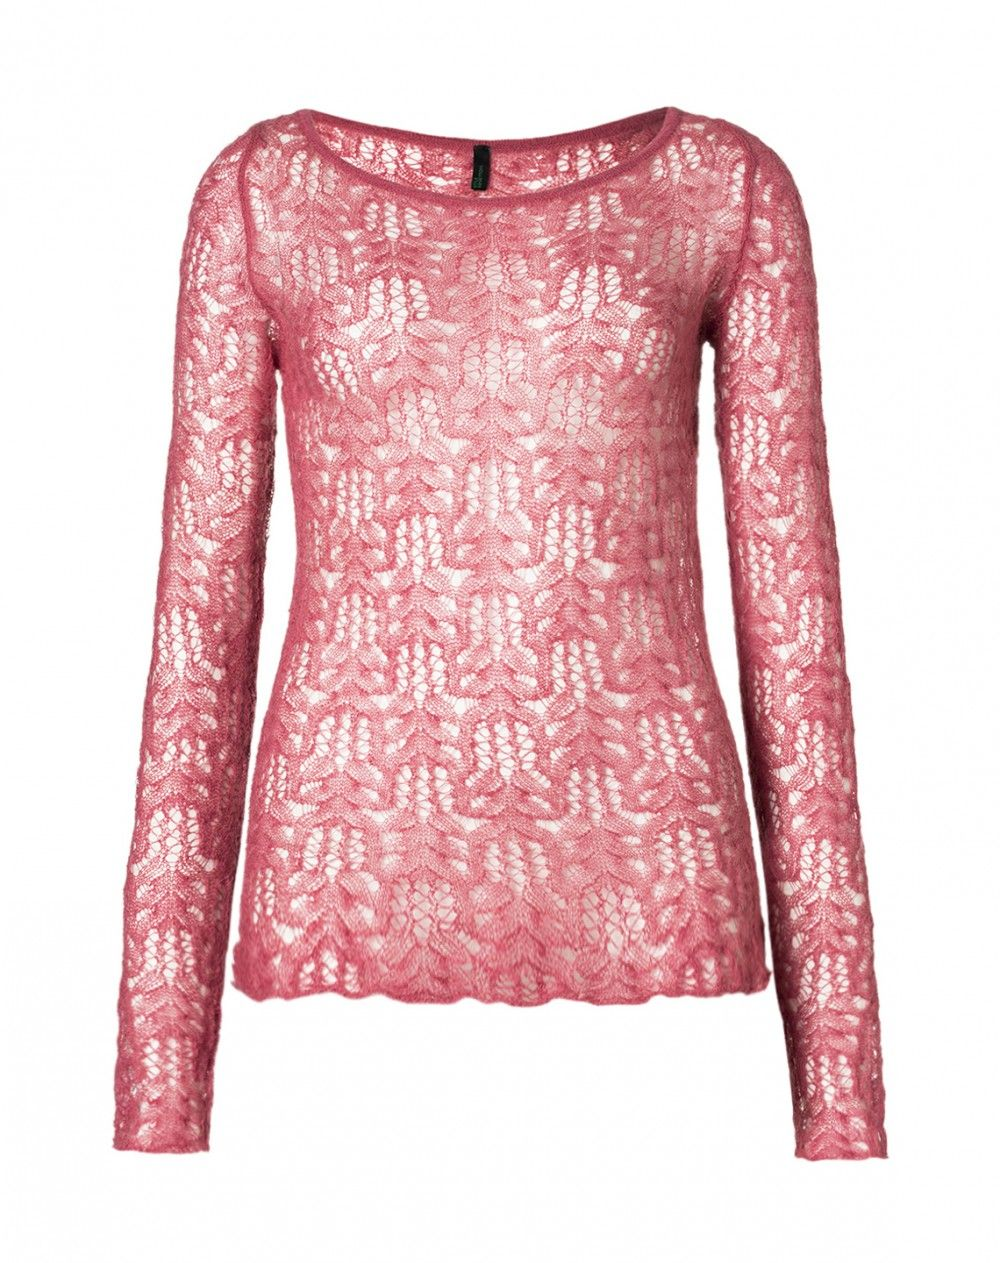 Long sleeve jumper - WOMAN - AUTUMN WINTER - NEW COLLECTION ... b9b212a757be